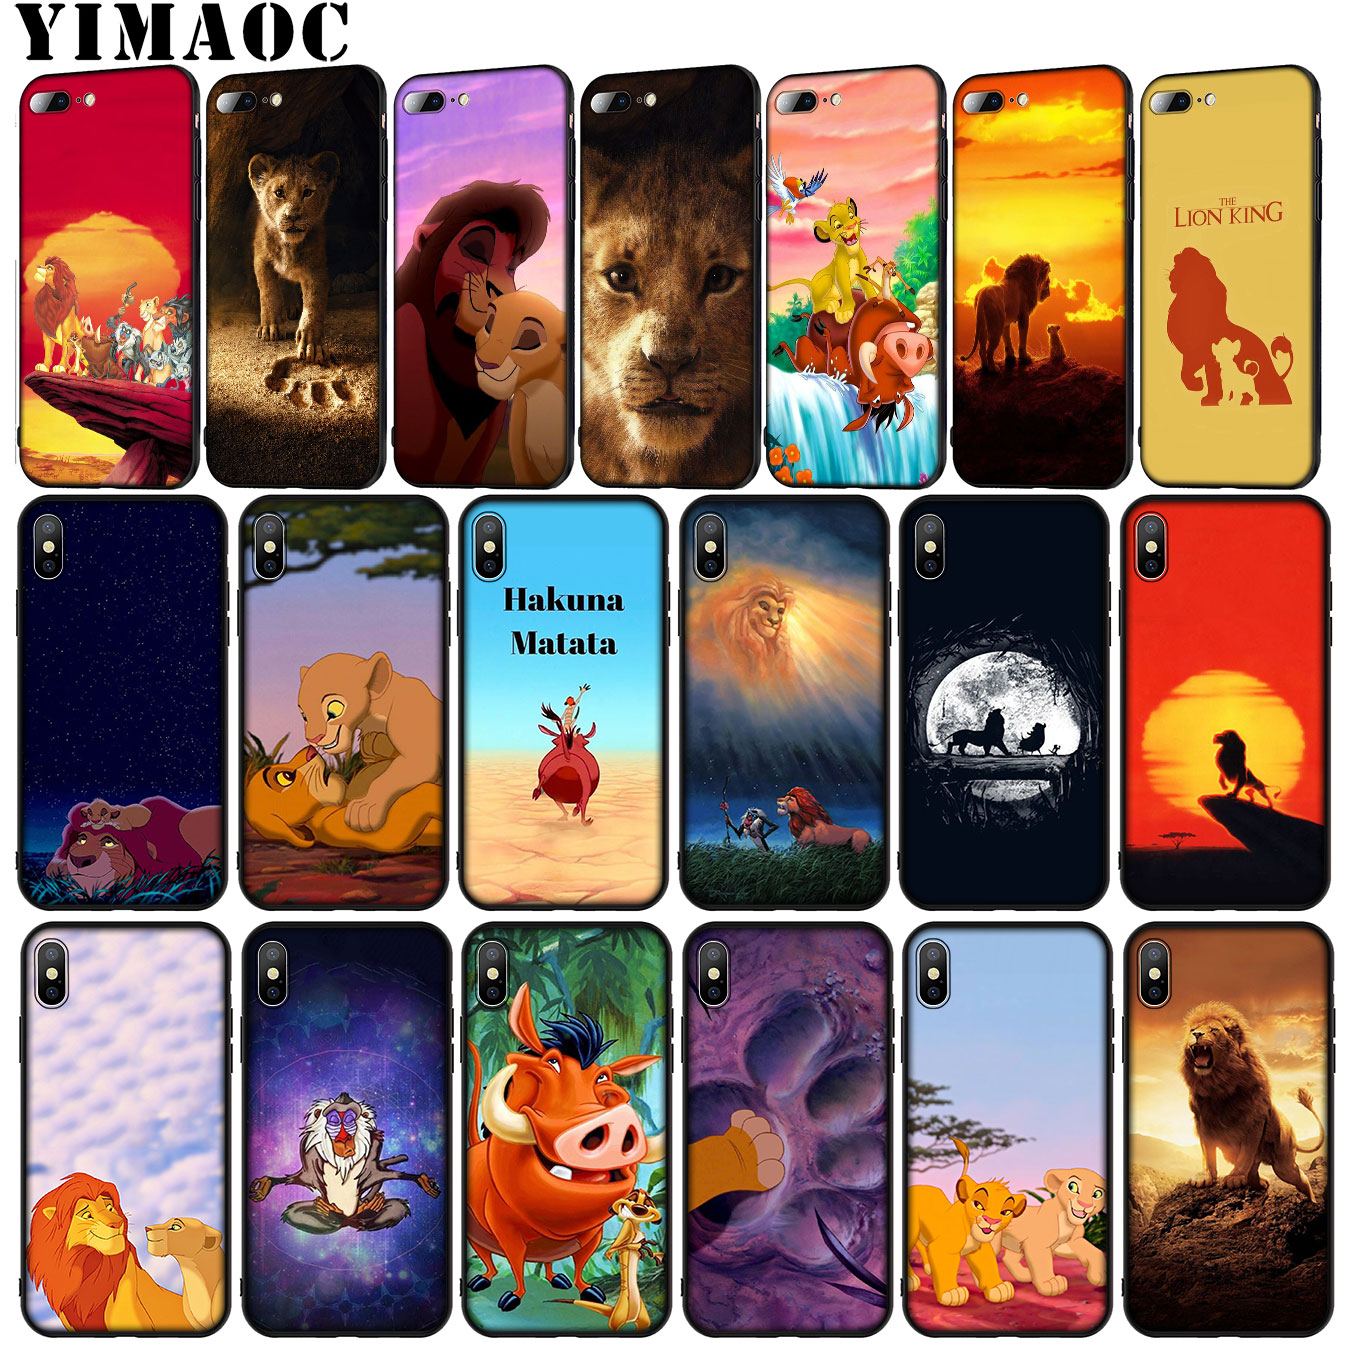 YIMAOC Cartoon The <font><b>lion</b></font> <font><b>king</b></font> 2019 Soft Silicone Phone <font><b>Case</b></font> for <font><b>iPhone</b></font> XR X XS Max X <font><b>6</b></font> 6S 7 8 Plus 5 5S SE Black TPU Cover image